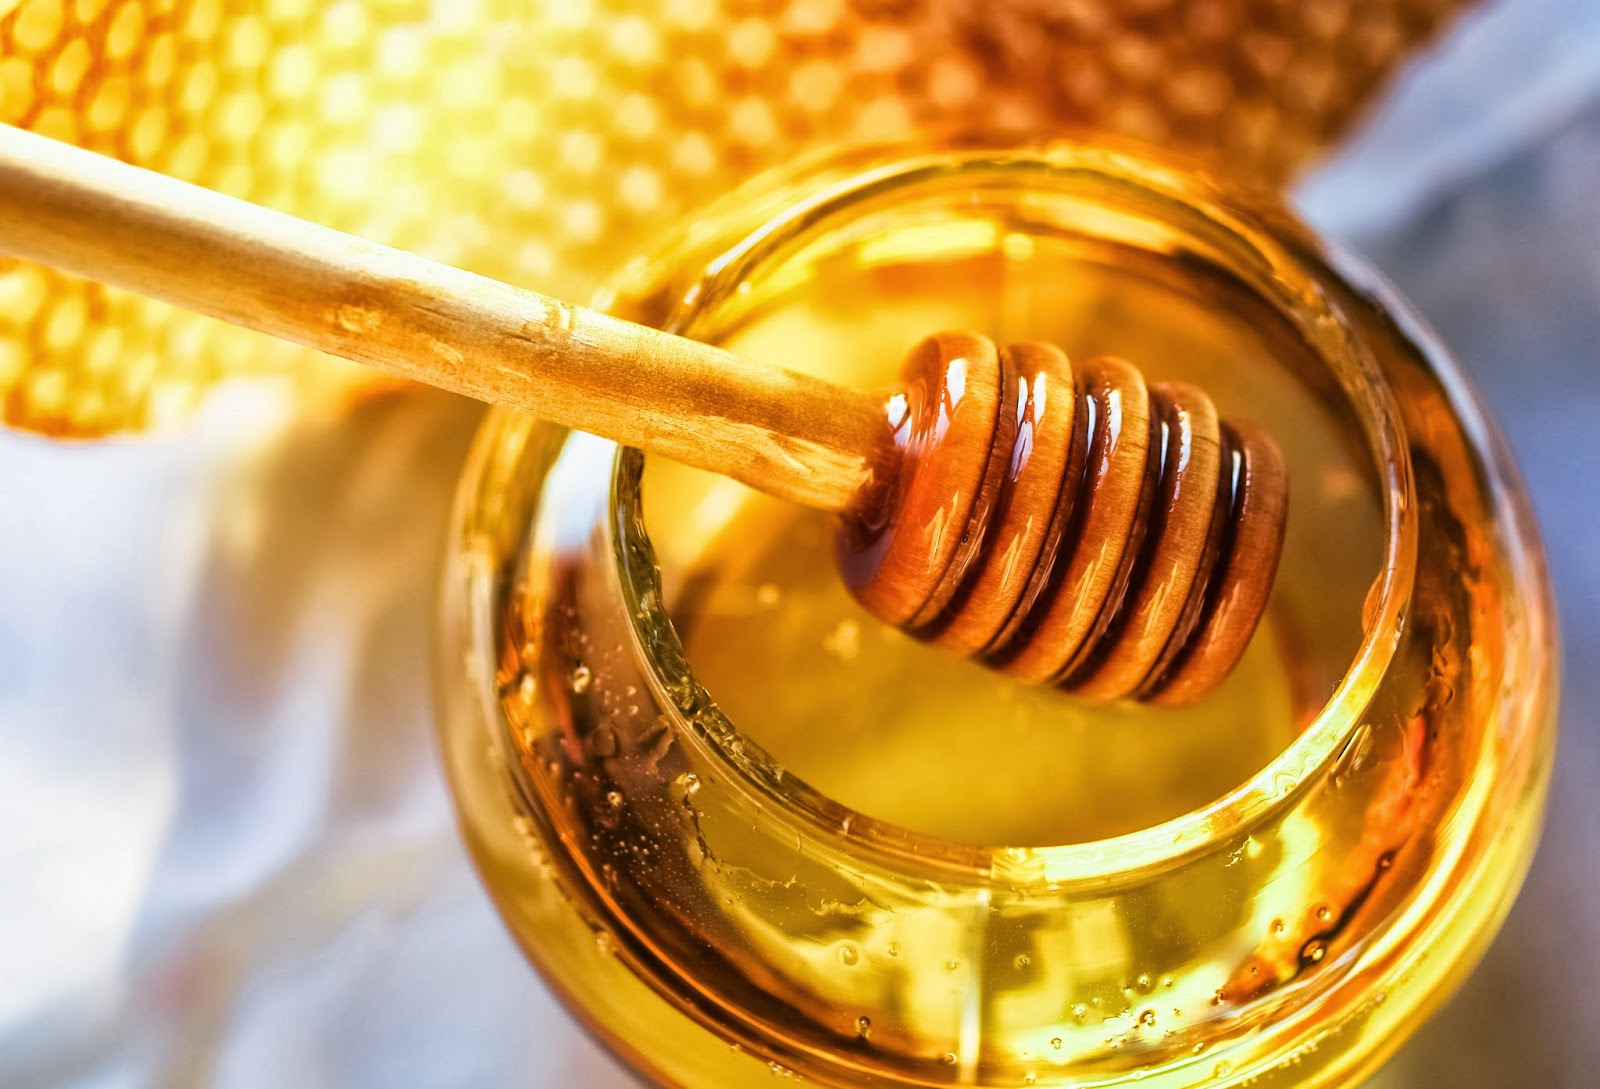 honey removes toxins, restores antioxidants, fructose